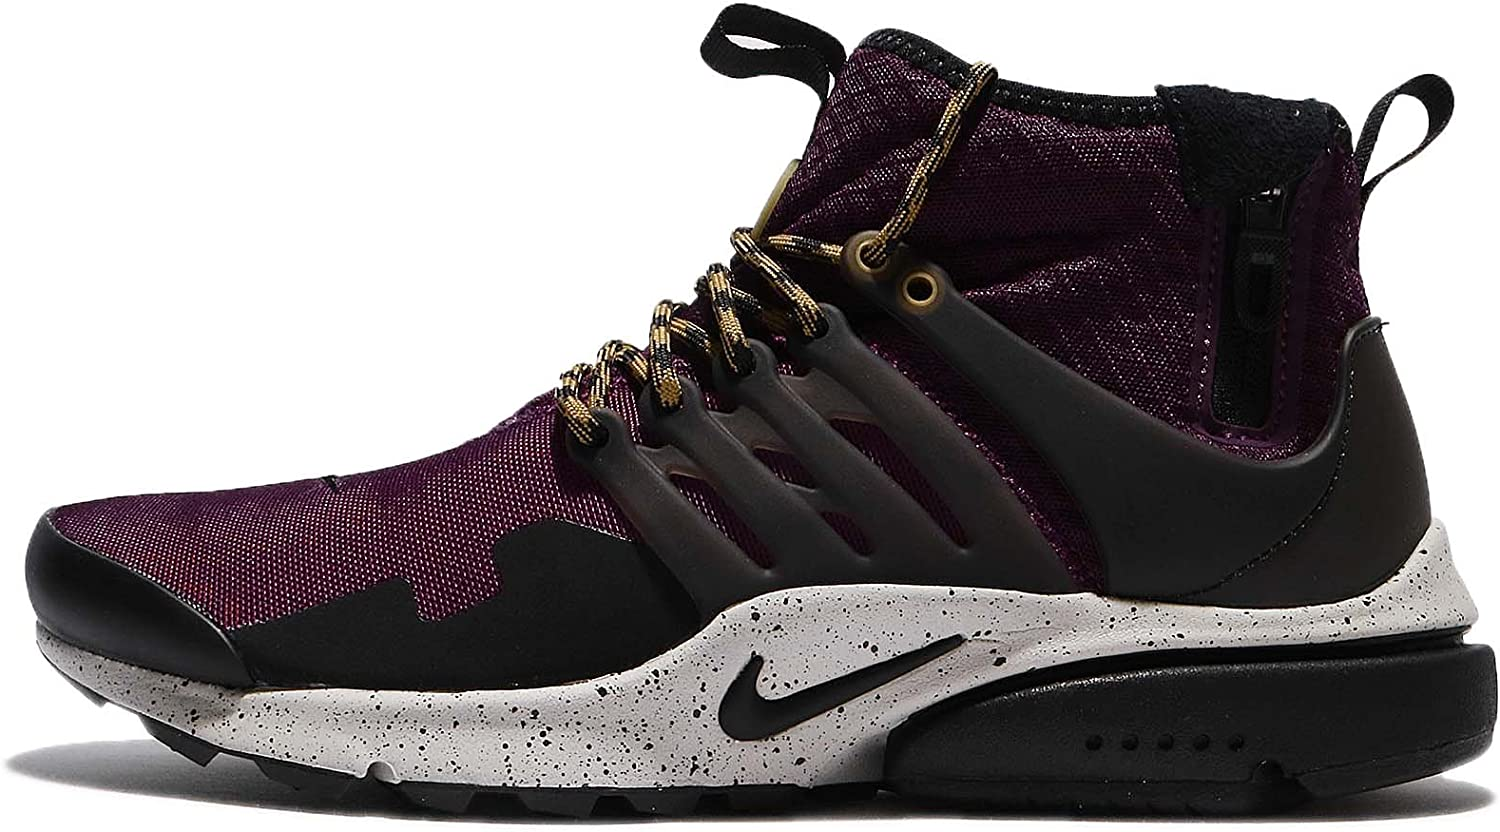 Nike Air Presto Mid Utility Men s Running Shoes Bordeaux Black-Pale Grey 859524-600